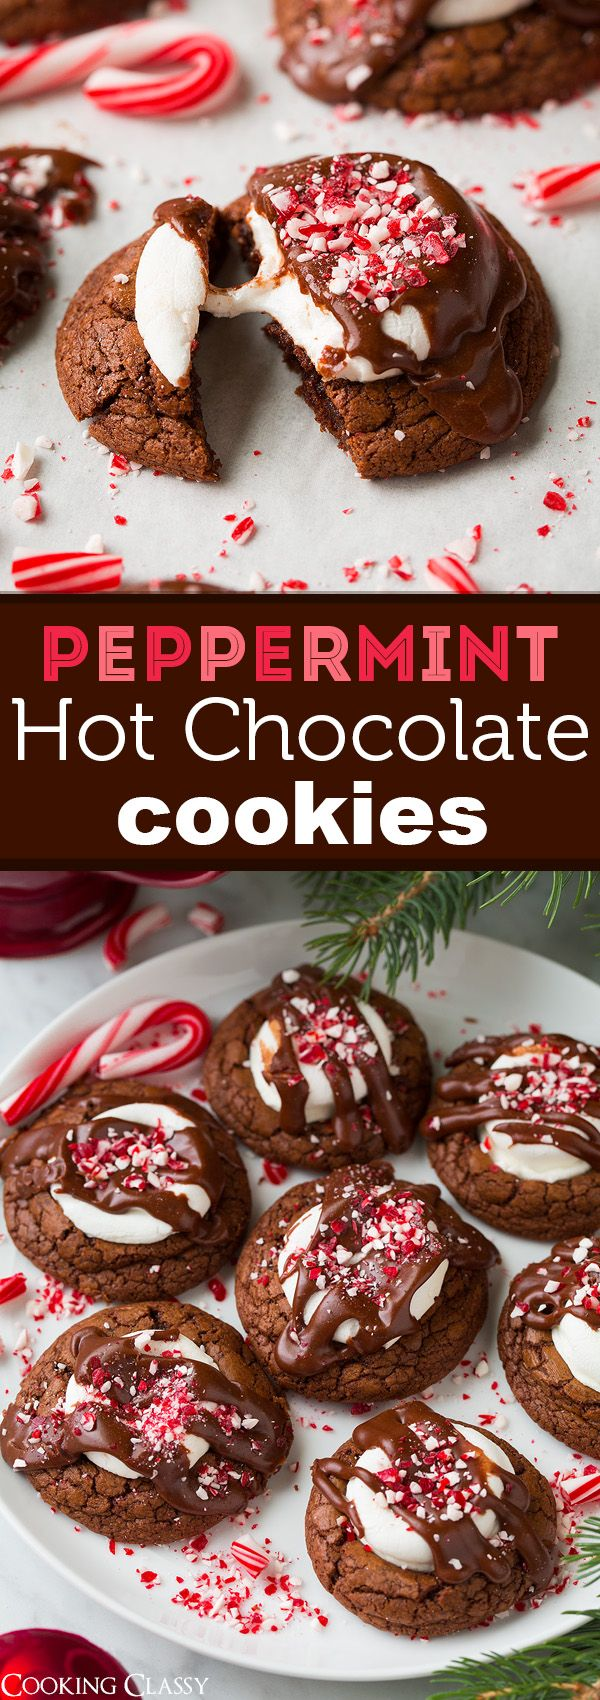 Peppermint Hot Chocolate Cookies - Rich, fudgy and totally delicious!